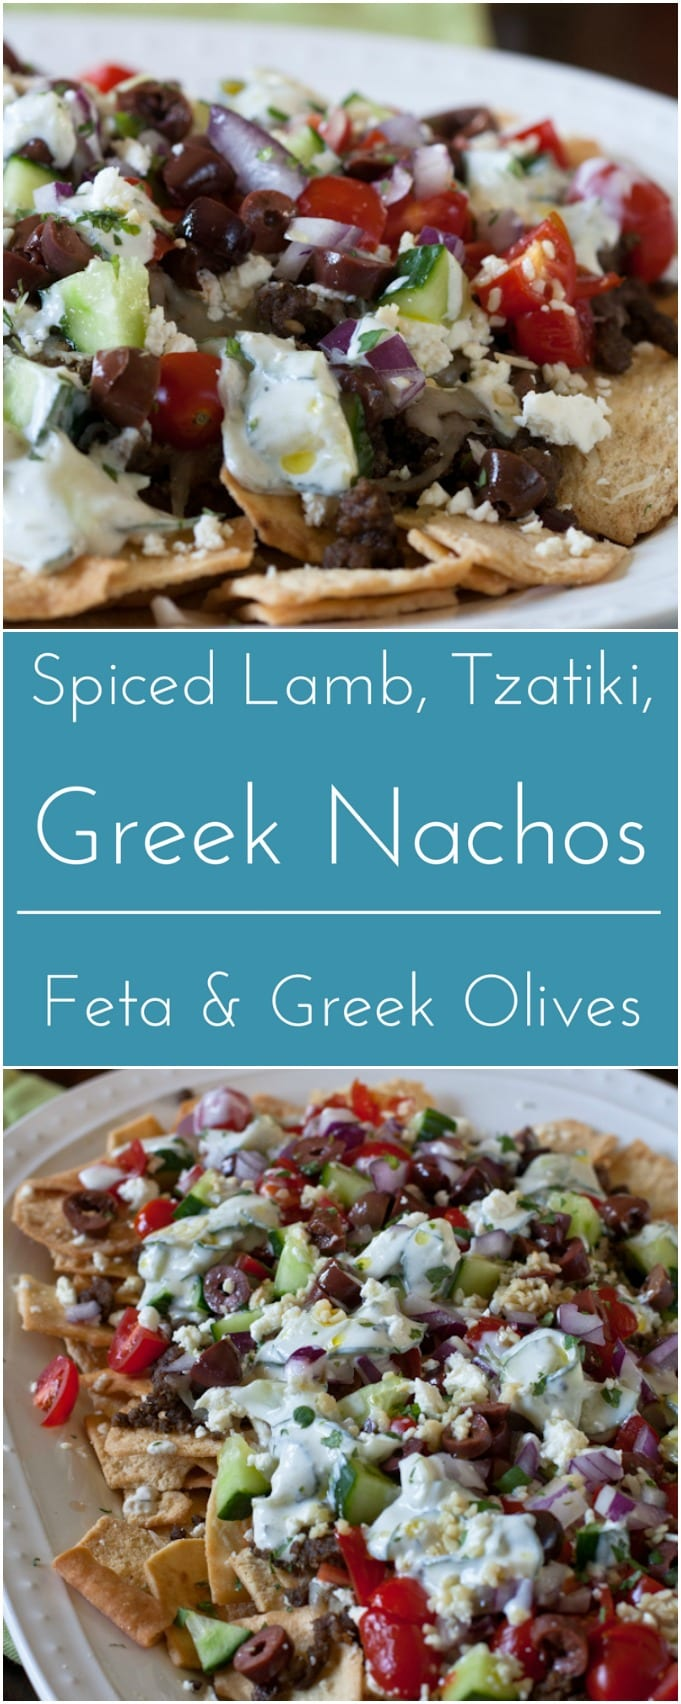 Loaded Greek nachos with Spiced Lamb, tzatziki, feta and Greek olives.